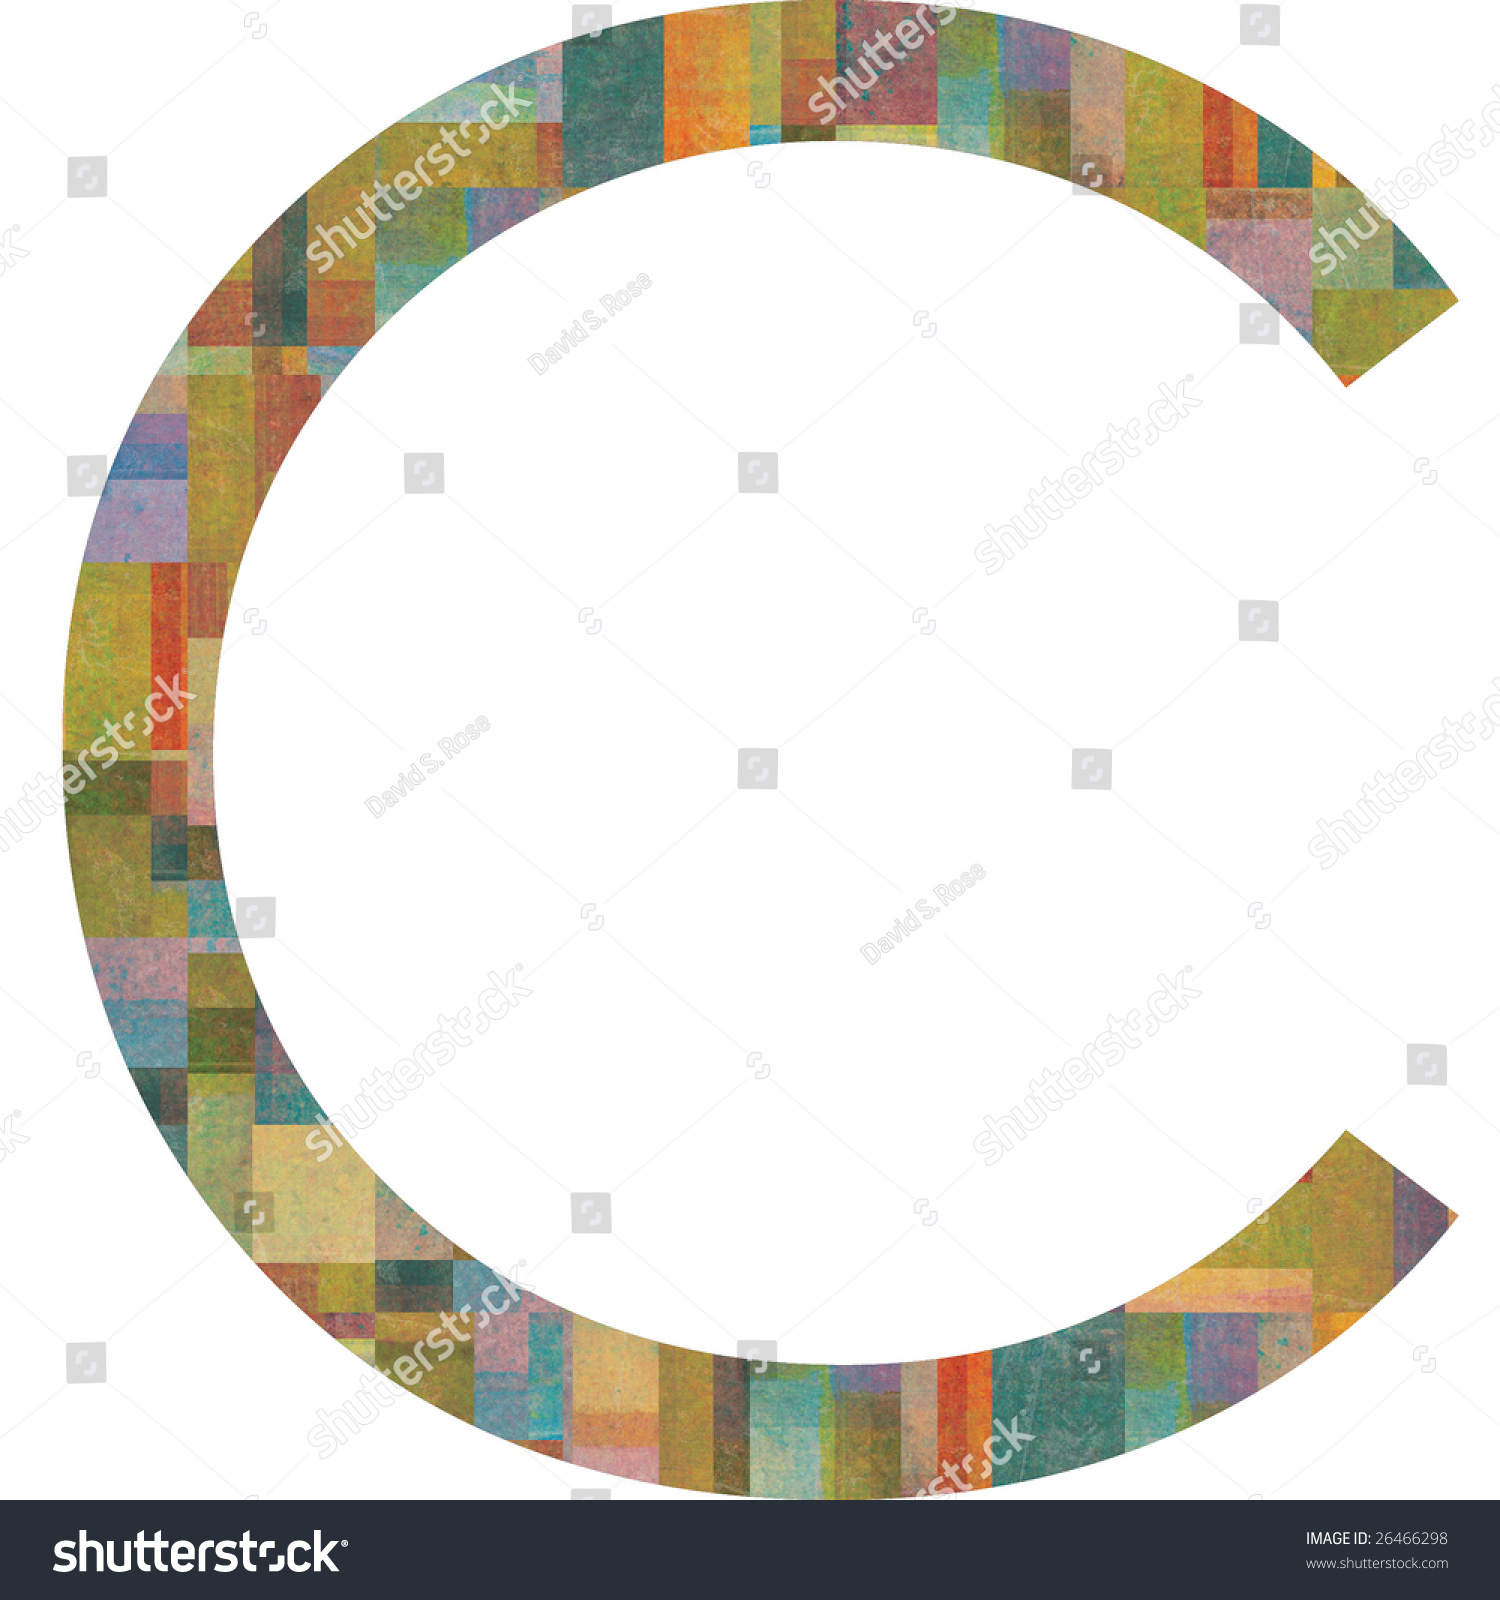 letter c alphabet symbol design stock illustration 26466298 shutterstock. Black Bedroom Furniture Sets. Home Design Ideas